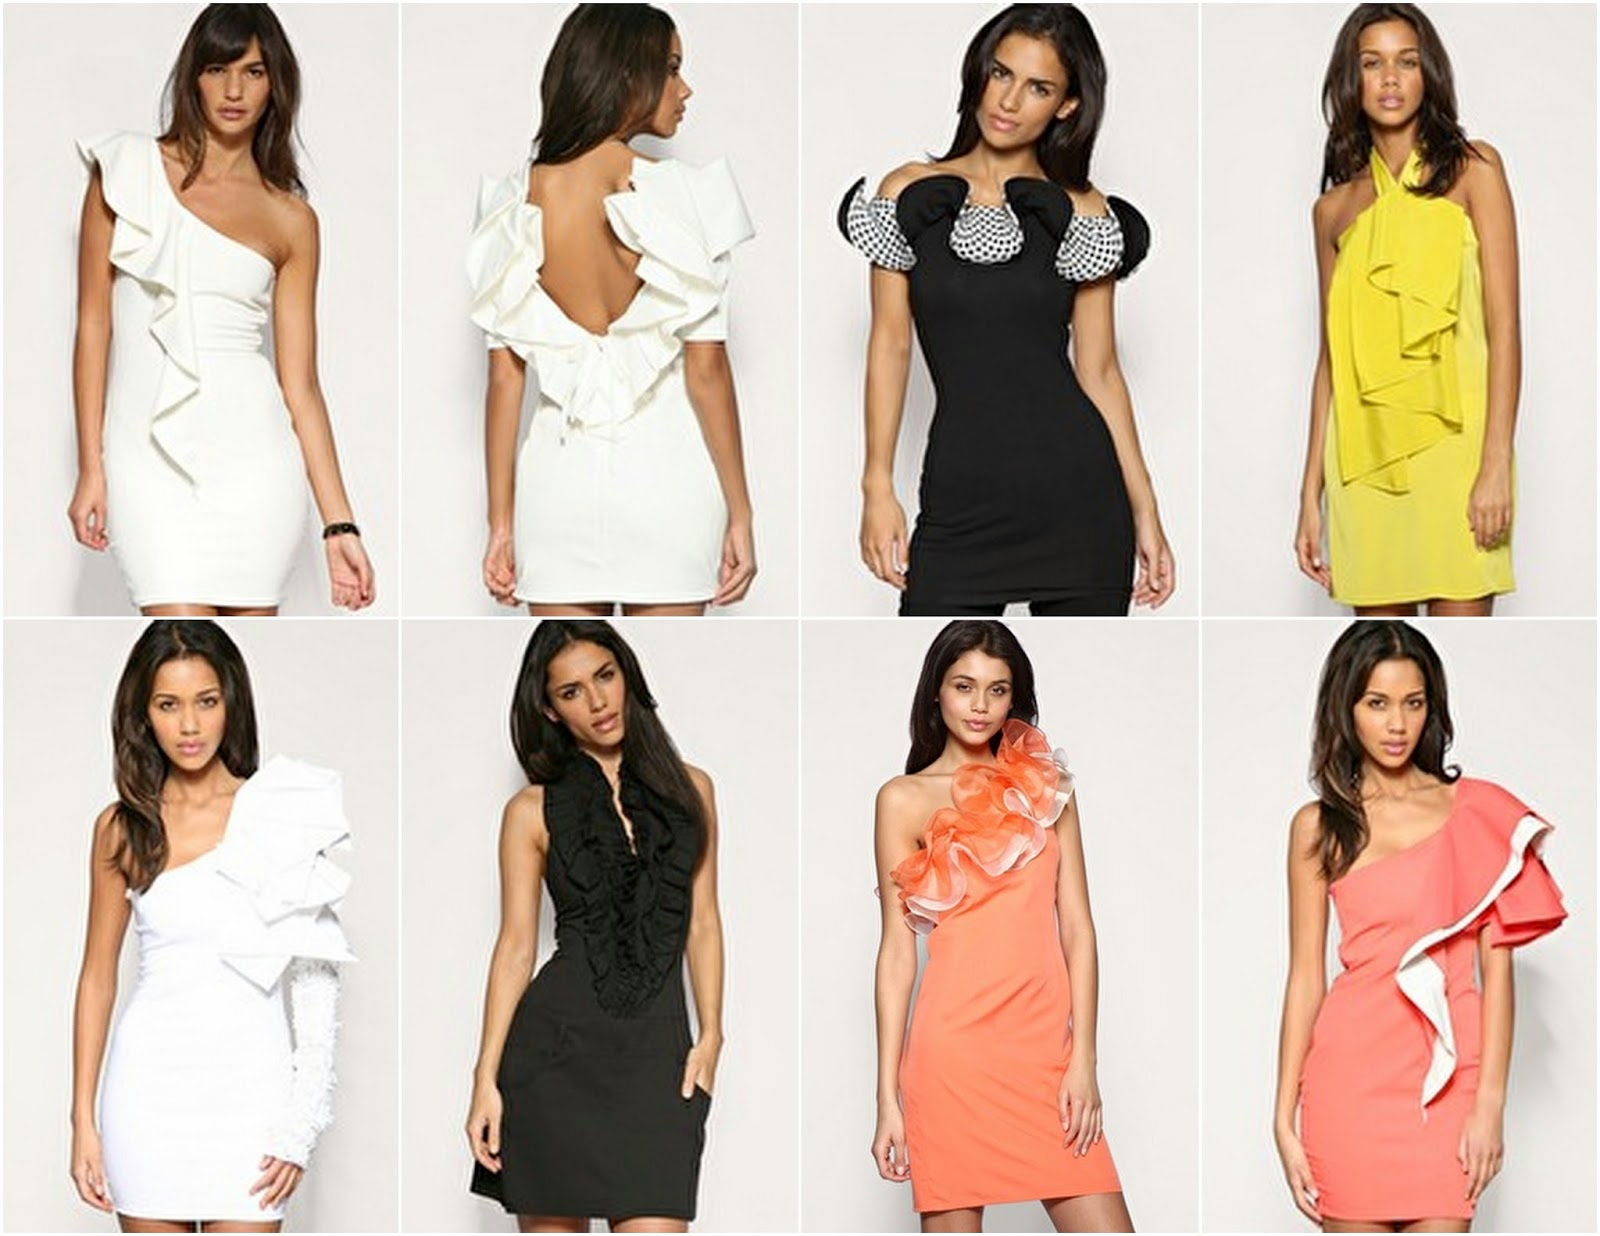 Fashion Latest trends for women foto pictures